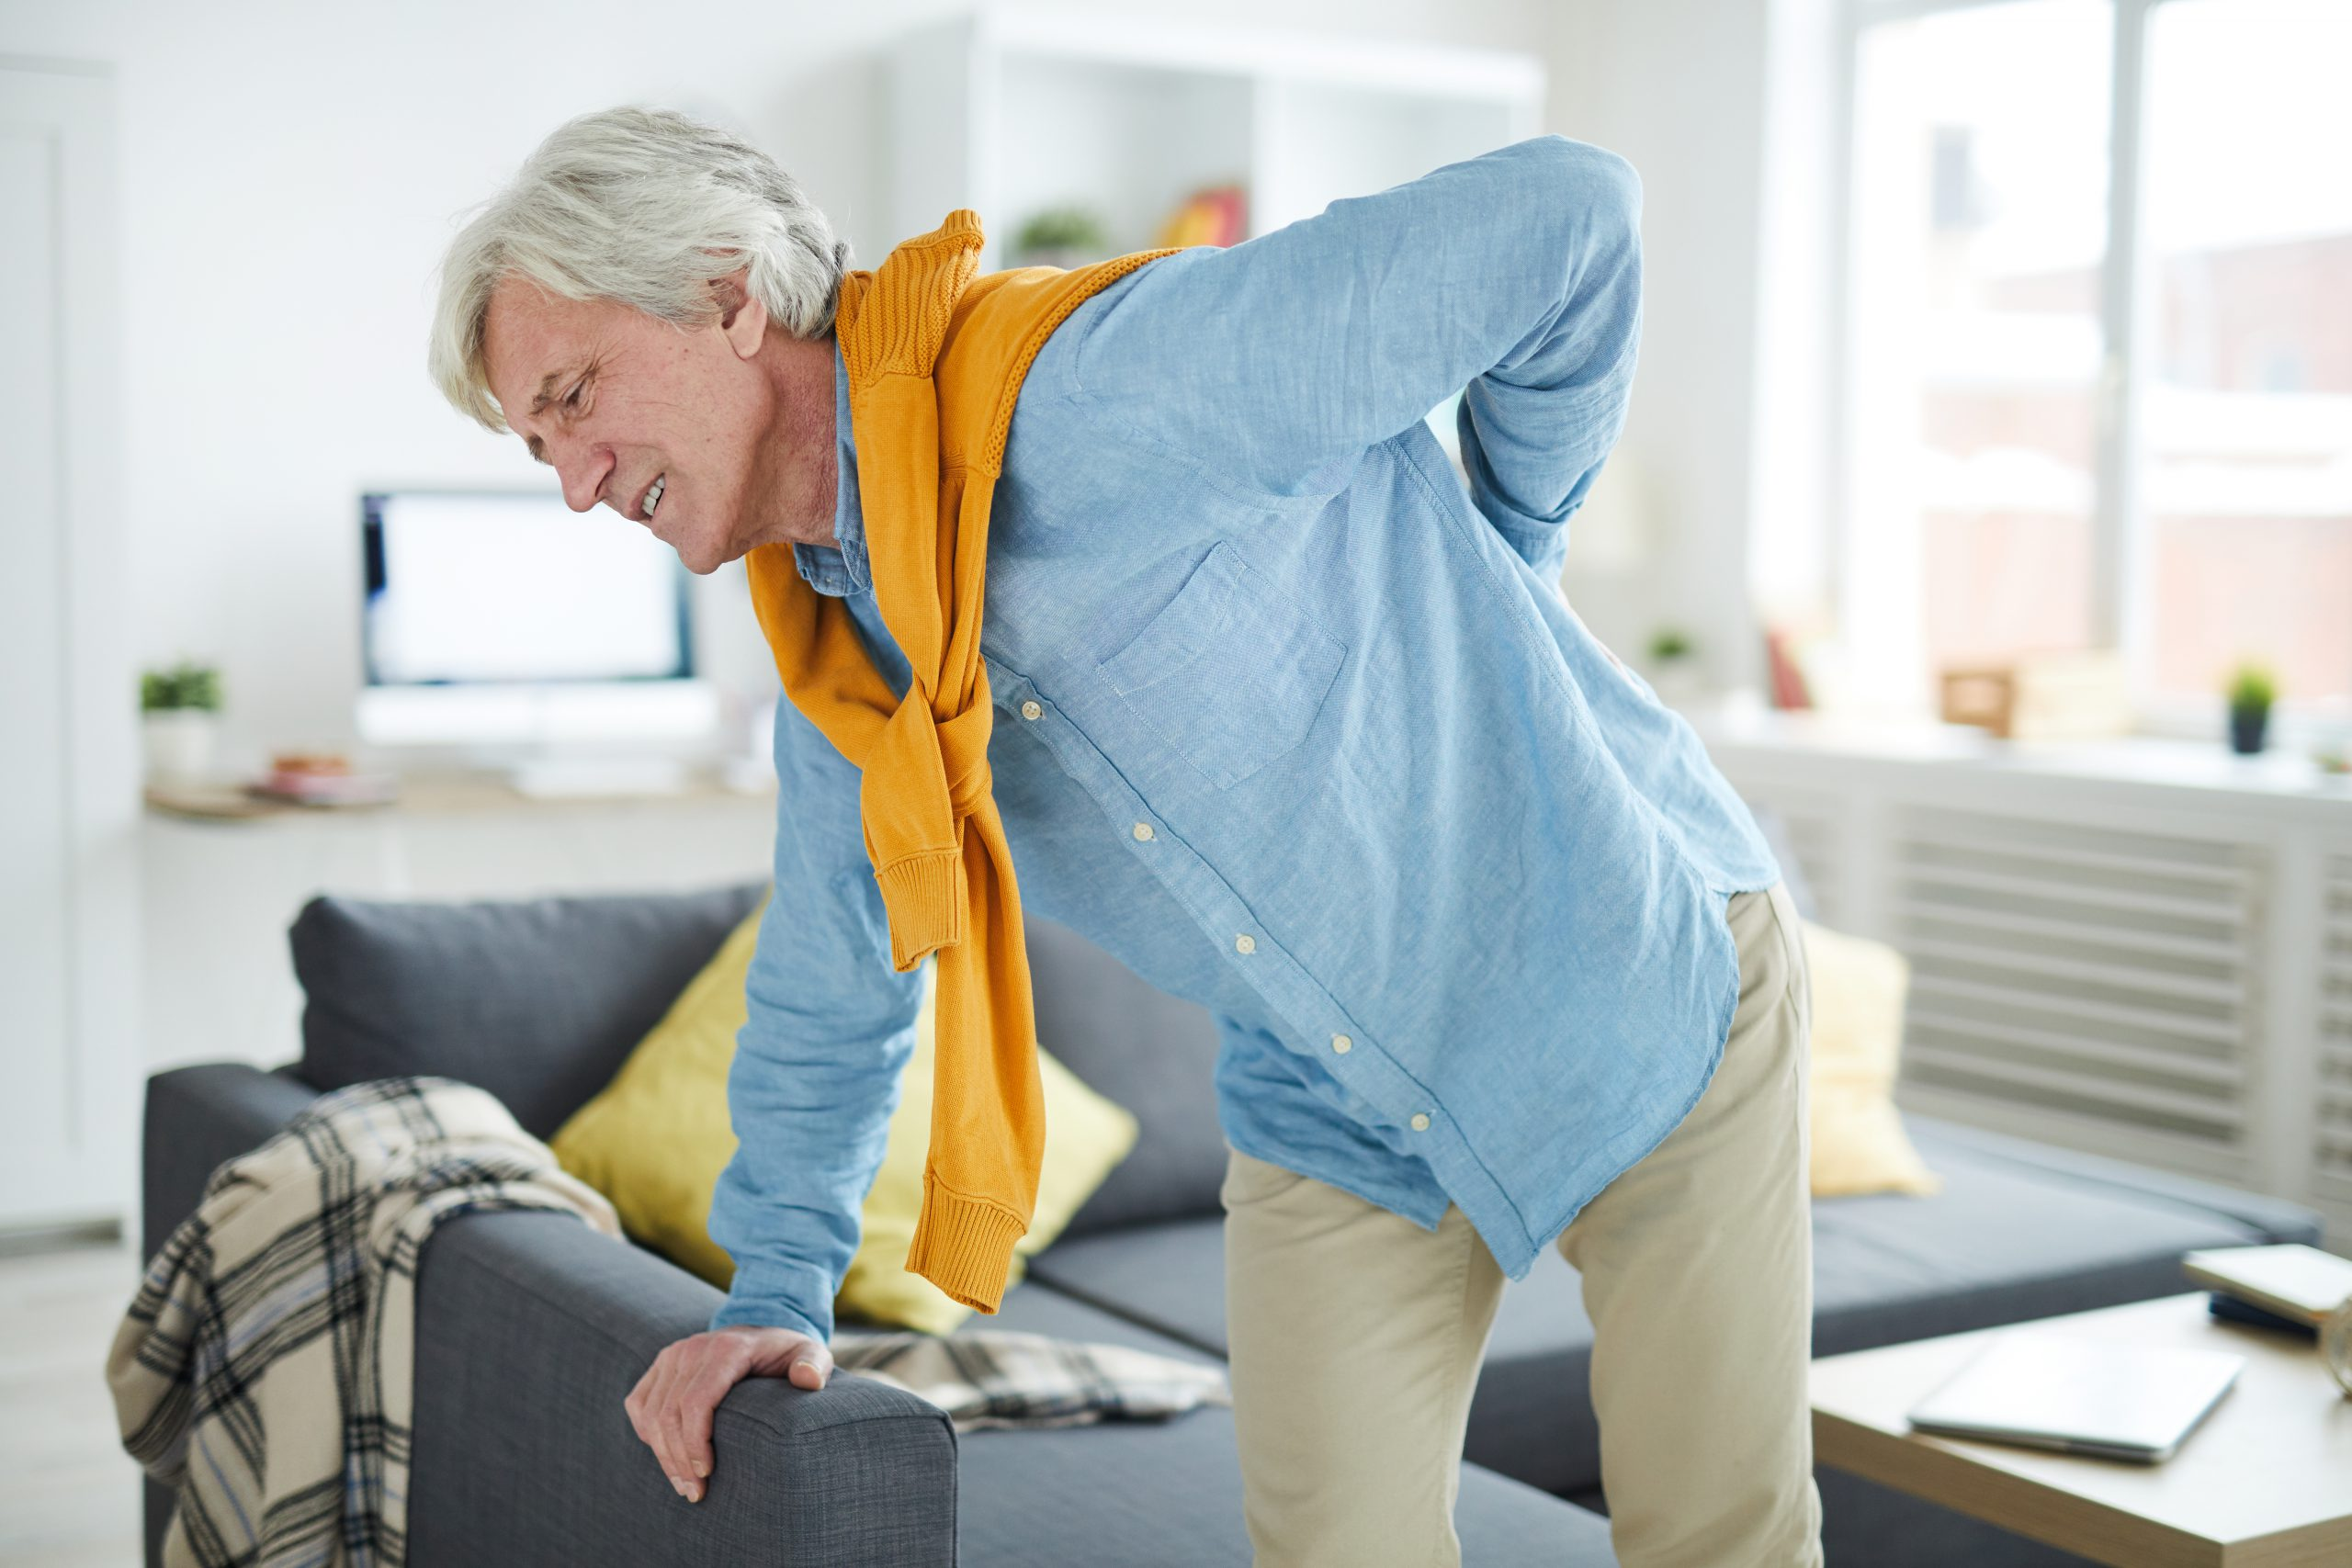 Image of an older person with back pain